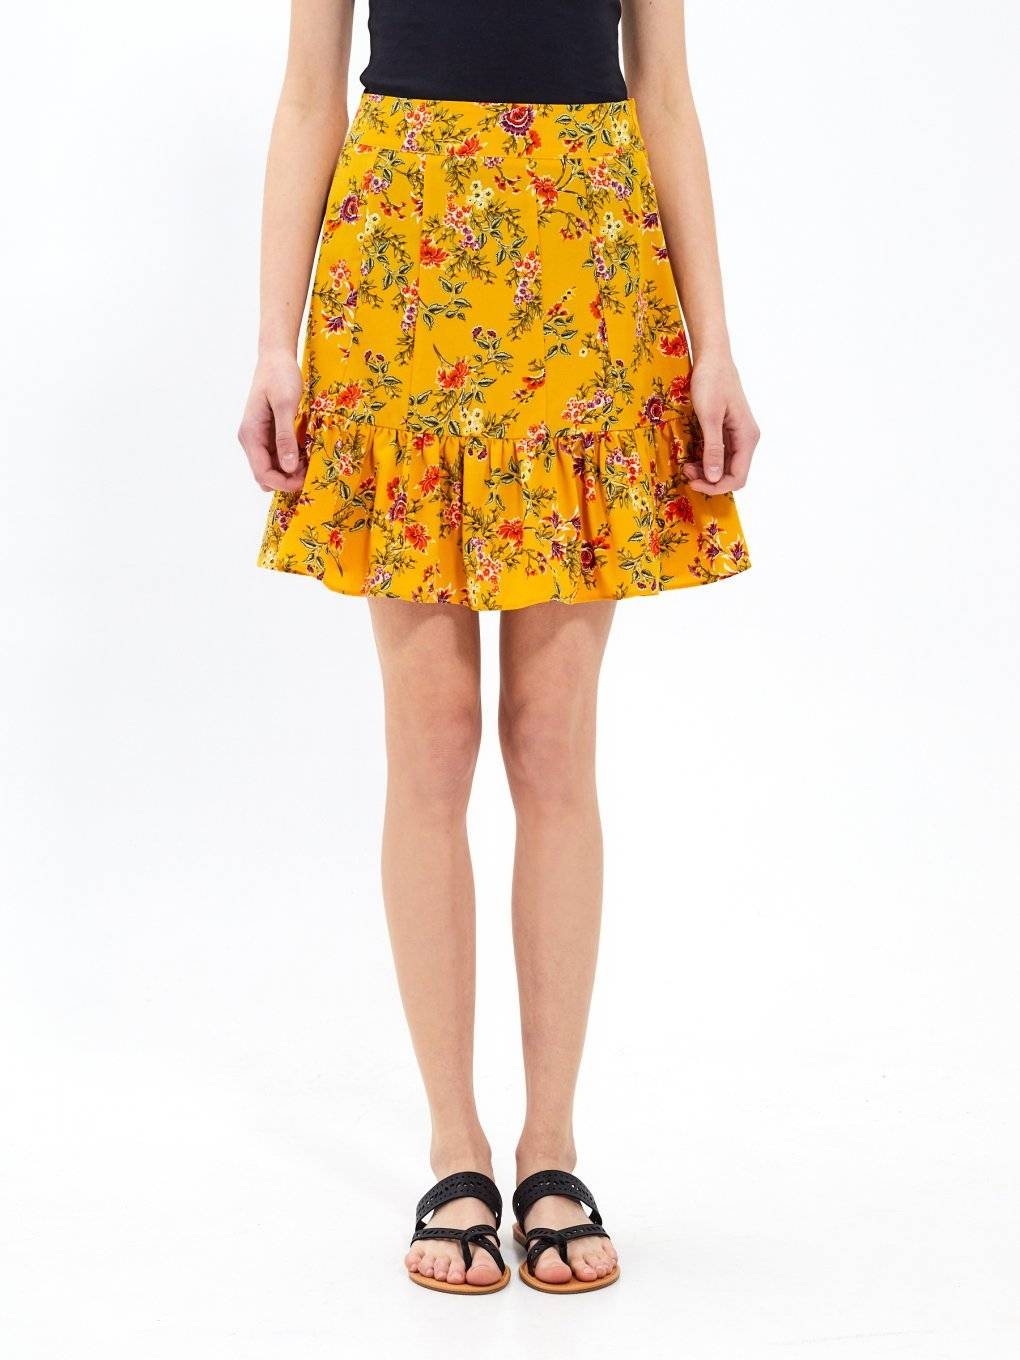 Floral print skirt with ruffle hem